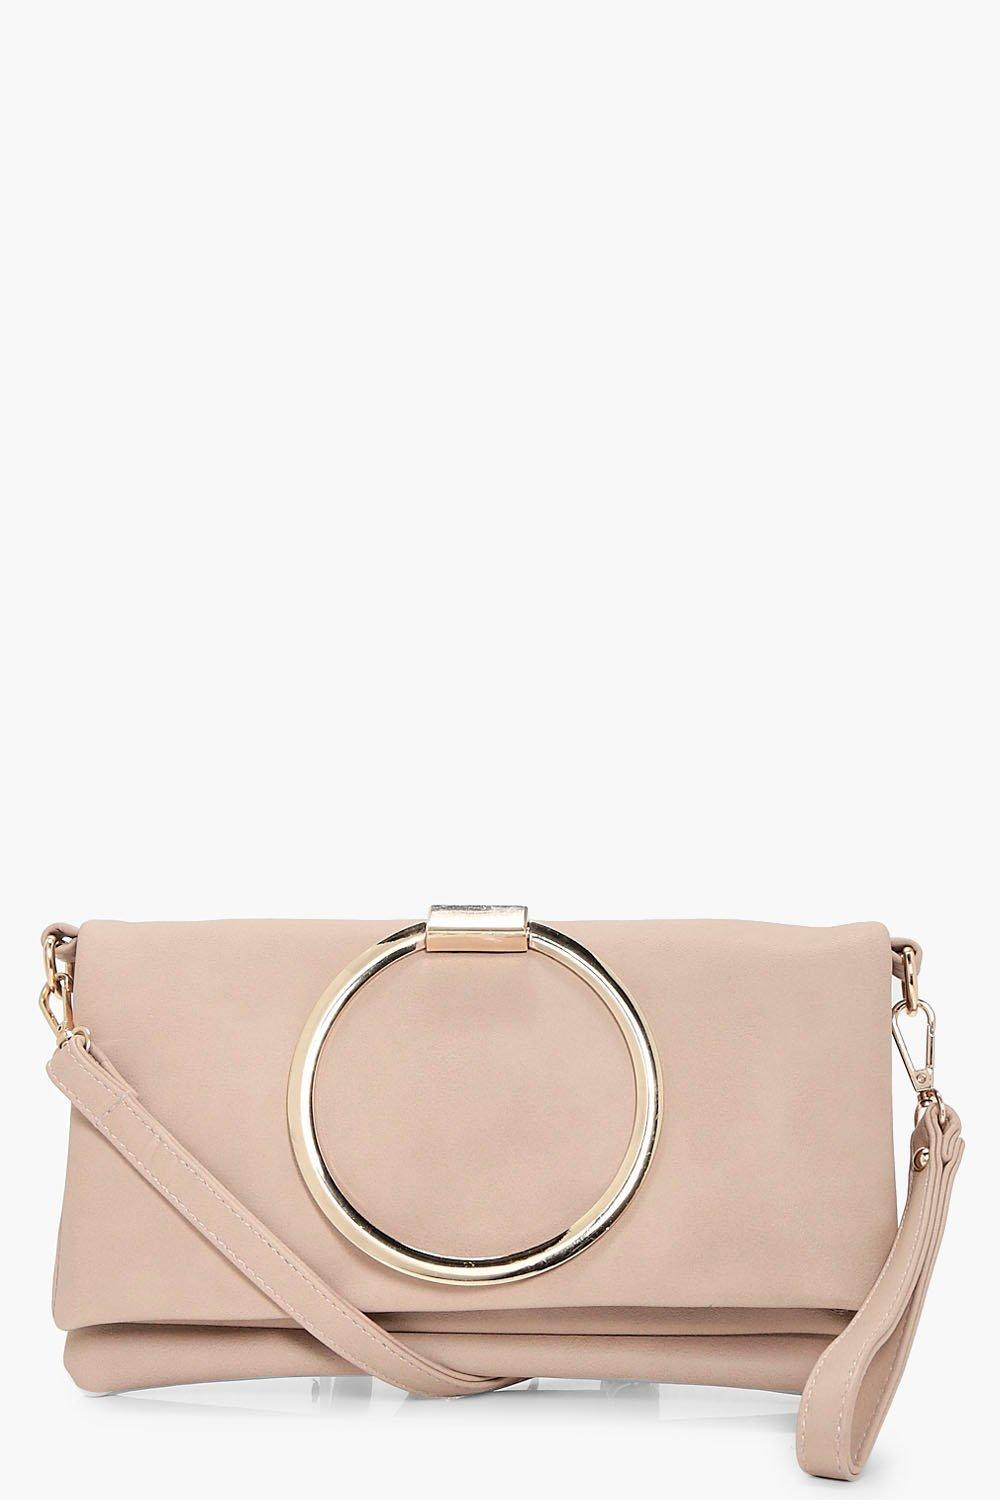 Large Ring Cross Body Bag - blush - Karen Large Ri